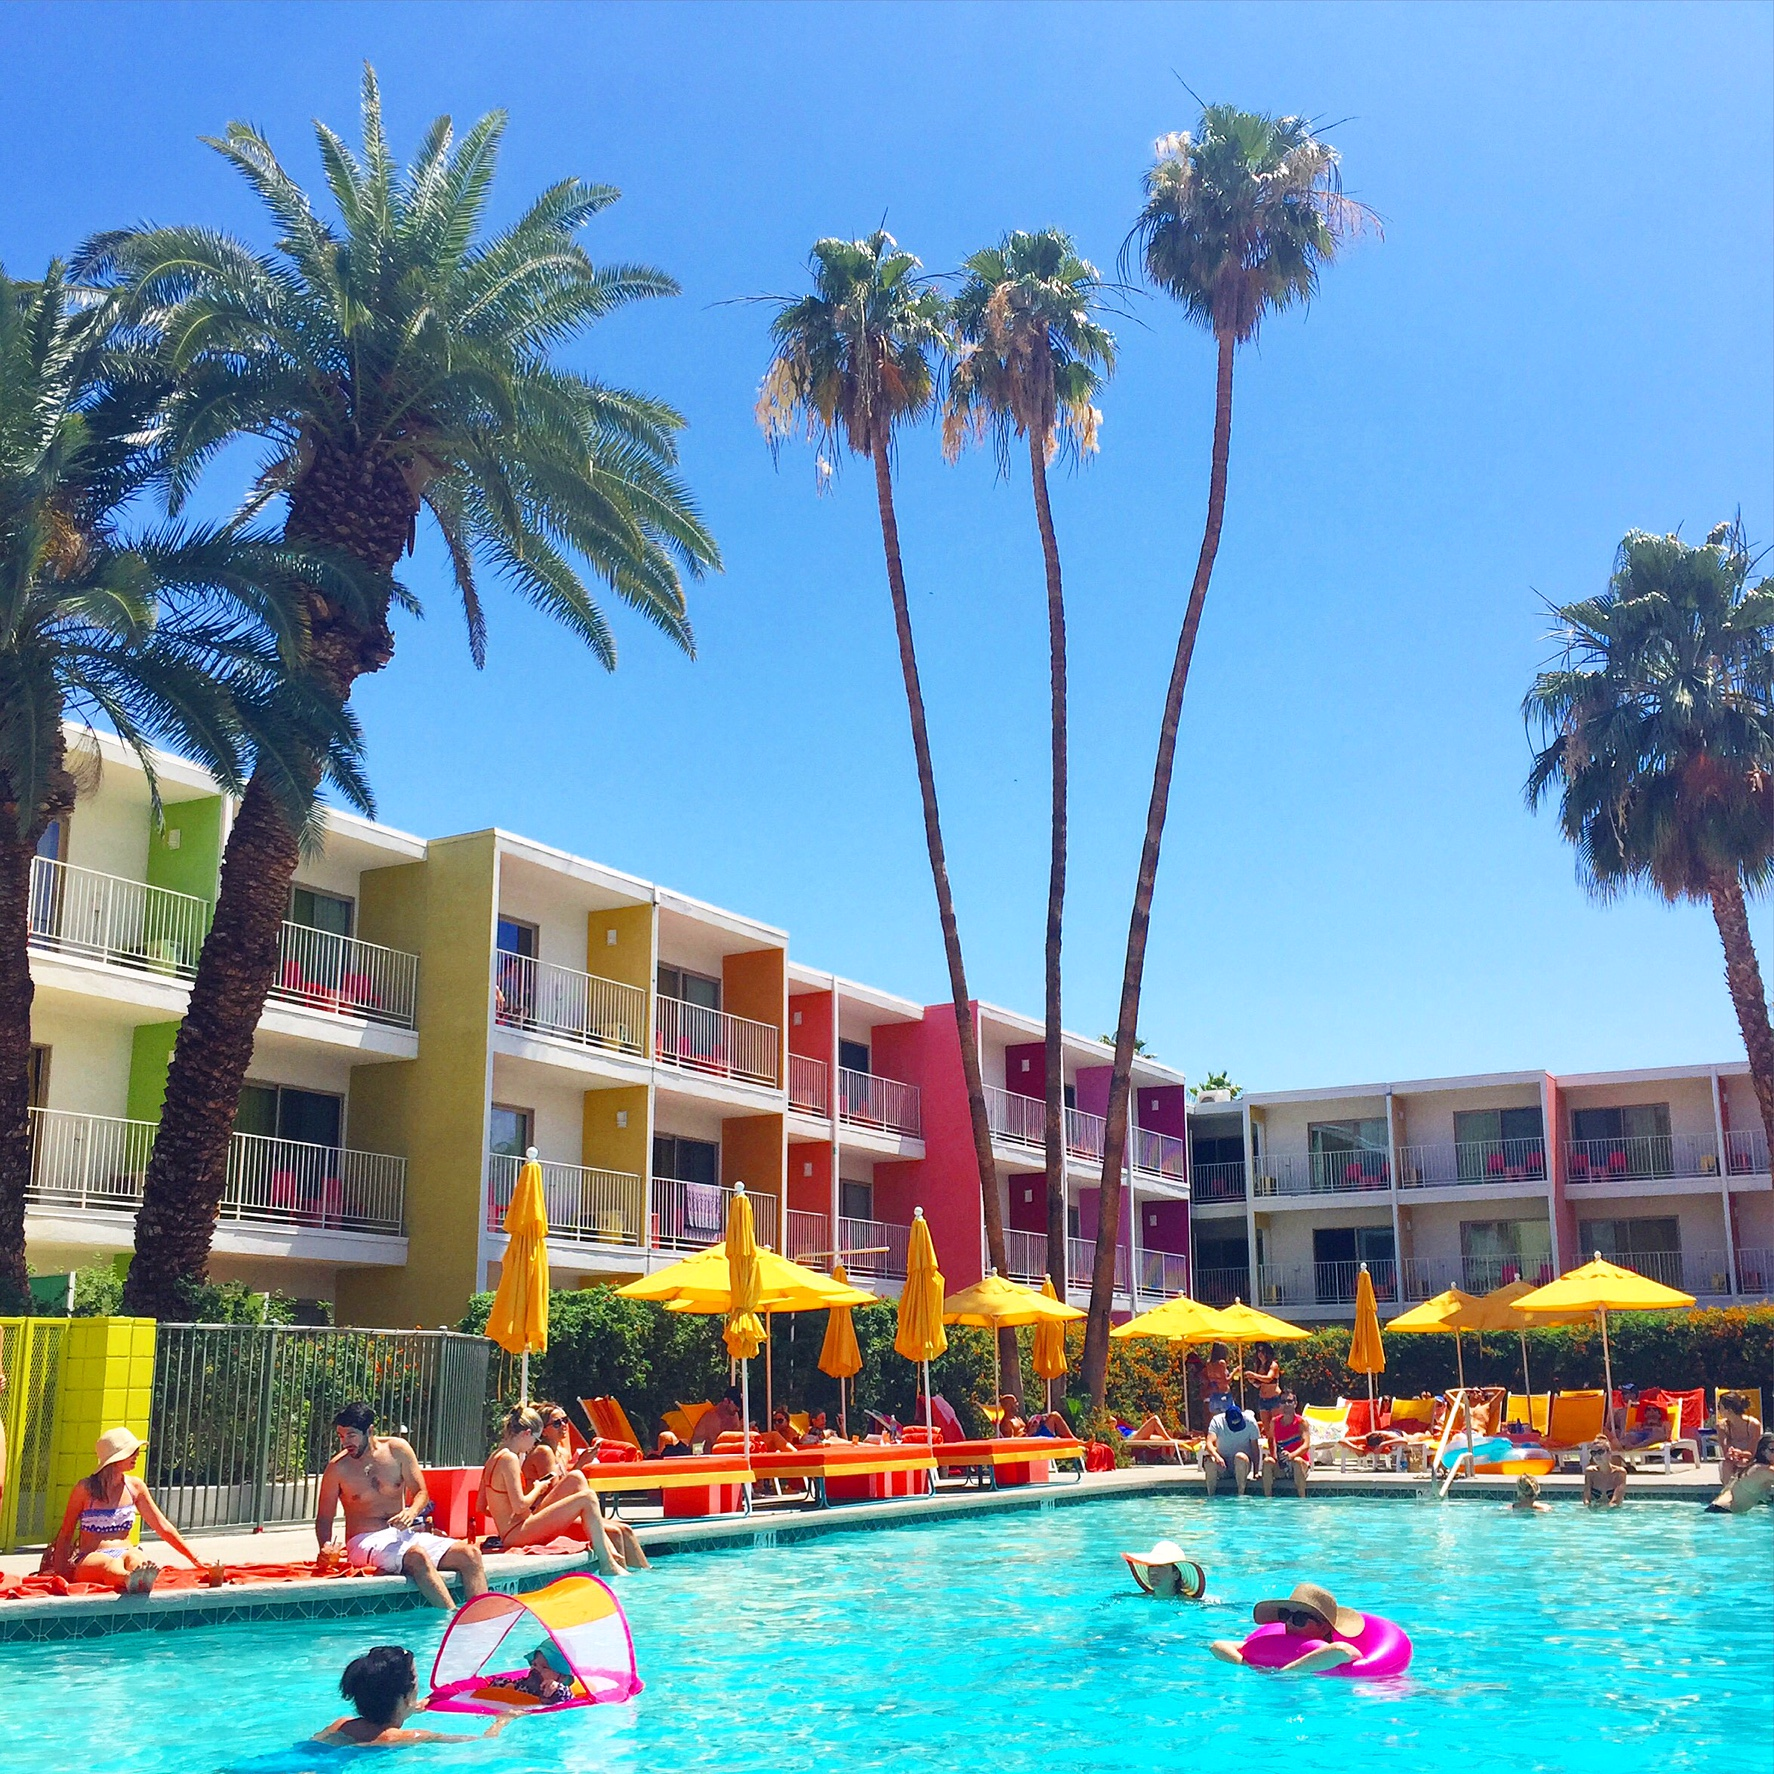 If Youu0027re Looking For The Rainbow, You Definitely Found It At Saguaro Palm  Springs! This Hotel Is The Brightest And Most Colorful Hotel In All Of Palm  ...